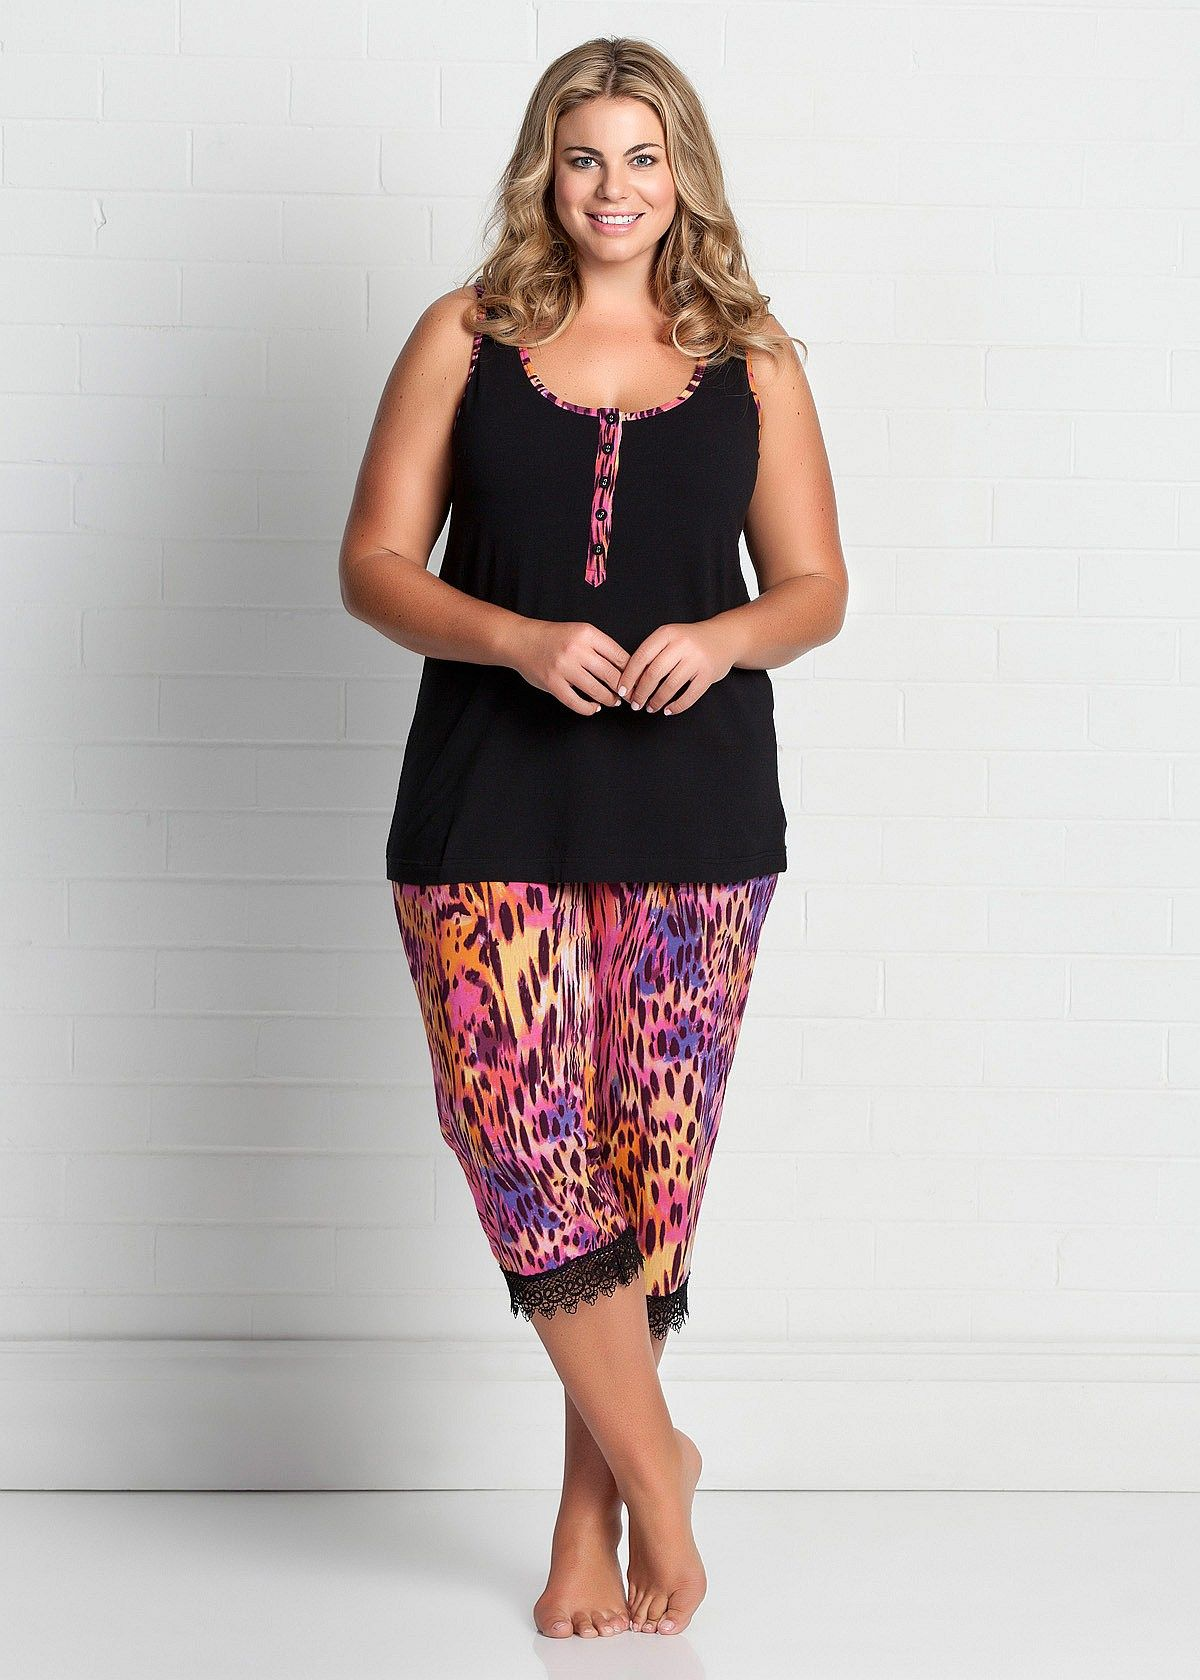 Plus Size Sleepwear for Women - Large Size Sleepwear Australia ...